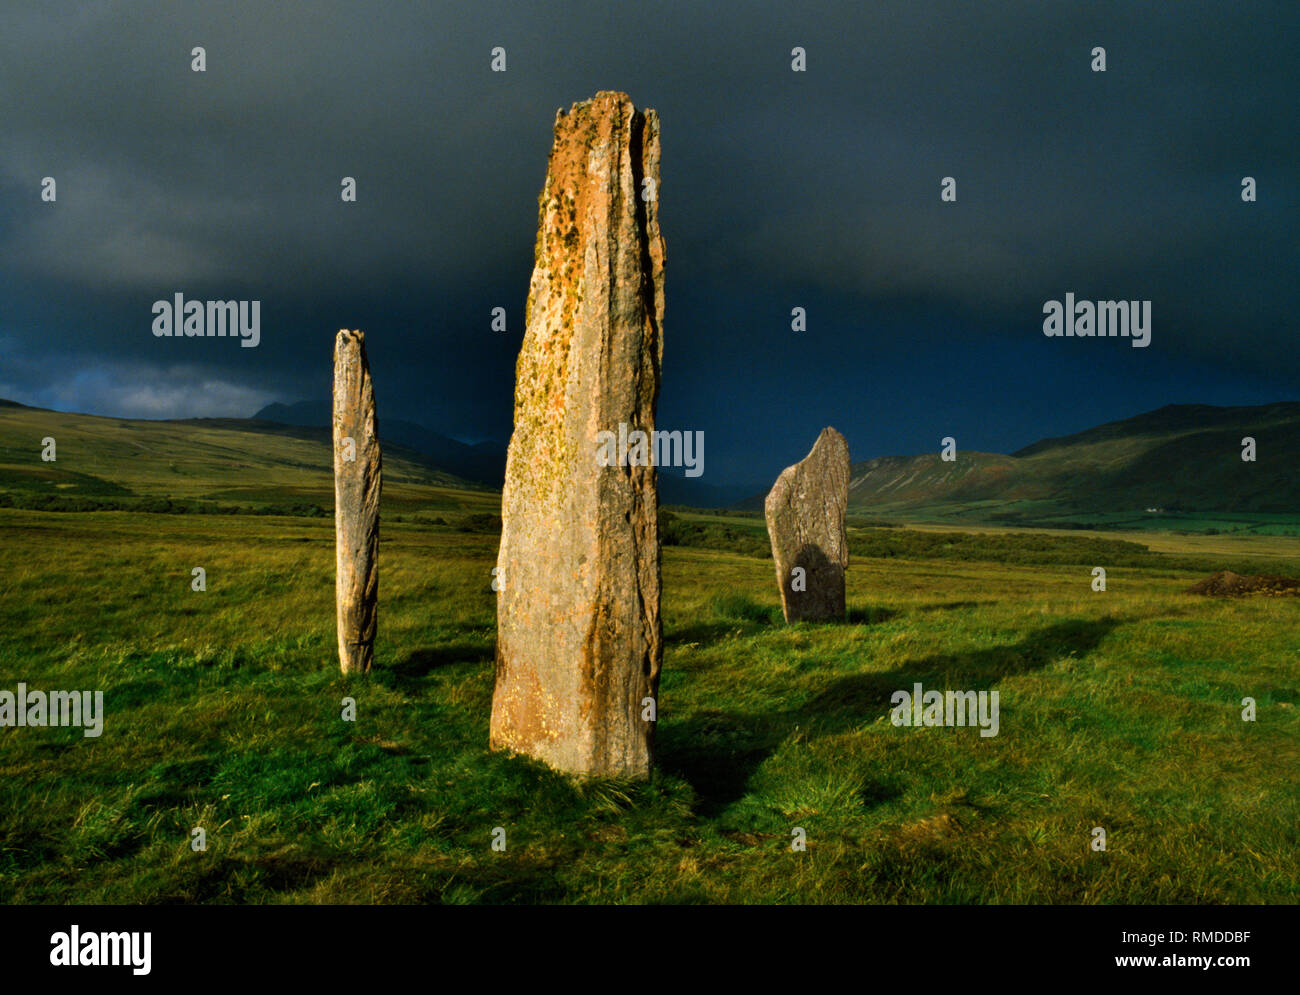 Machrie Moor stone circles, Arran, Scotland, UK: three sandstone slabs of Circle II looking NE to the peak of Goat Fell (behind centre stone). Stock Photo